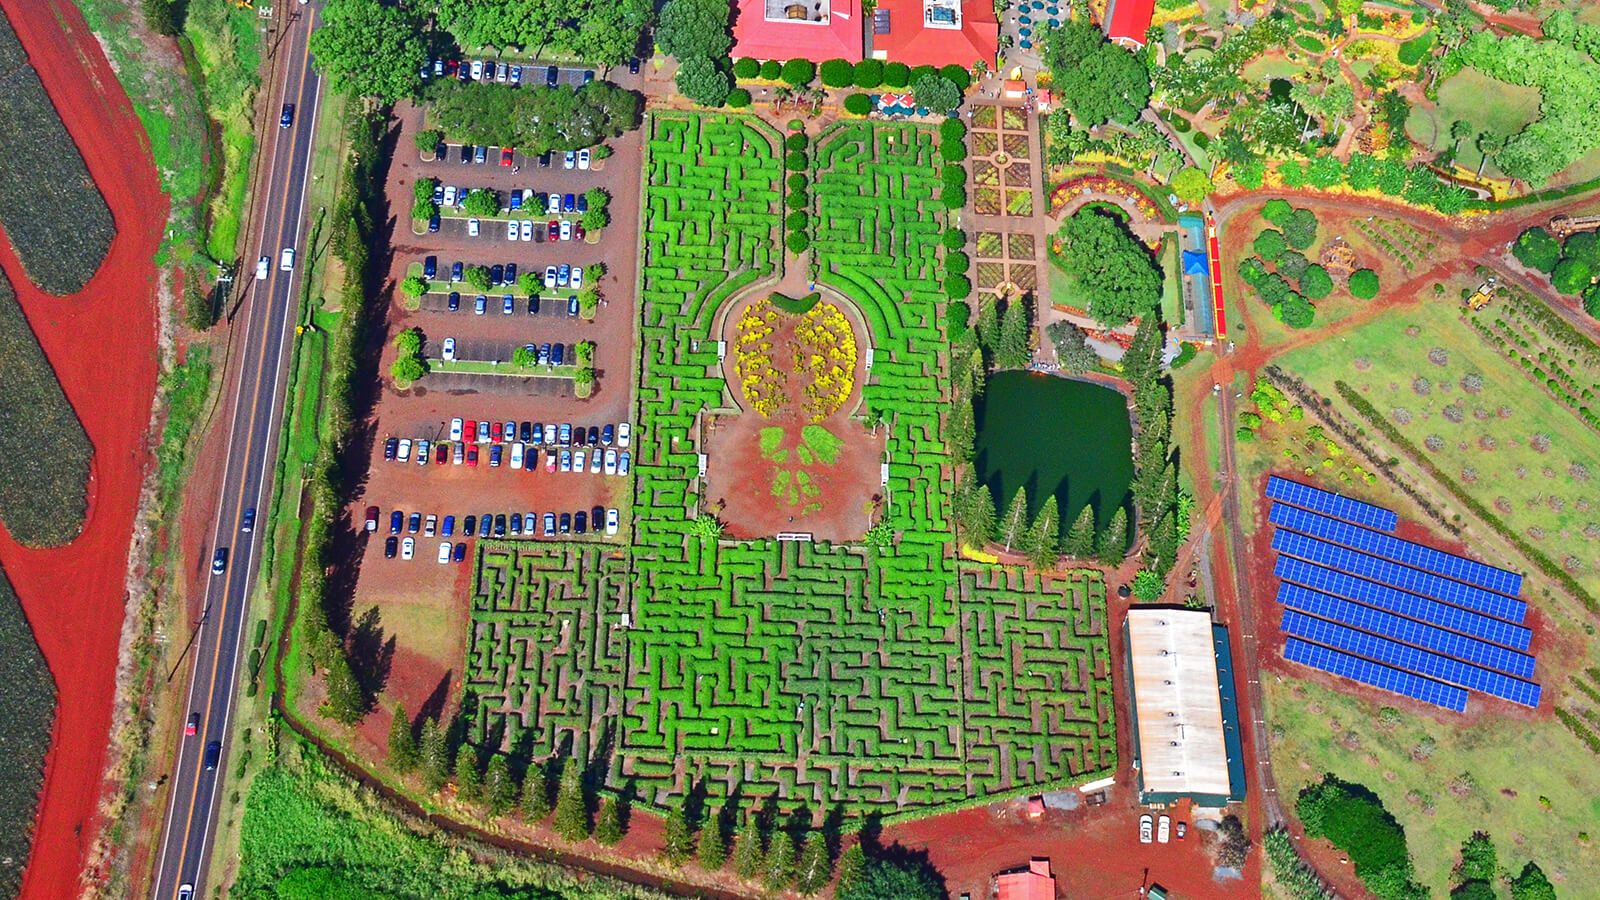 The world's largest maze is the Dole Pineapple Maze on Oahu, Hawaii